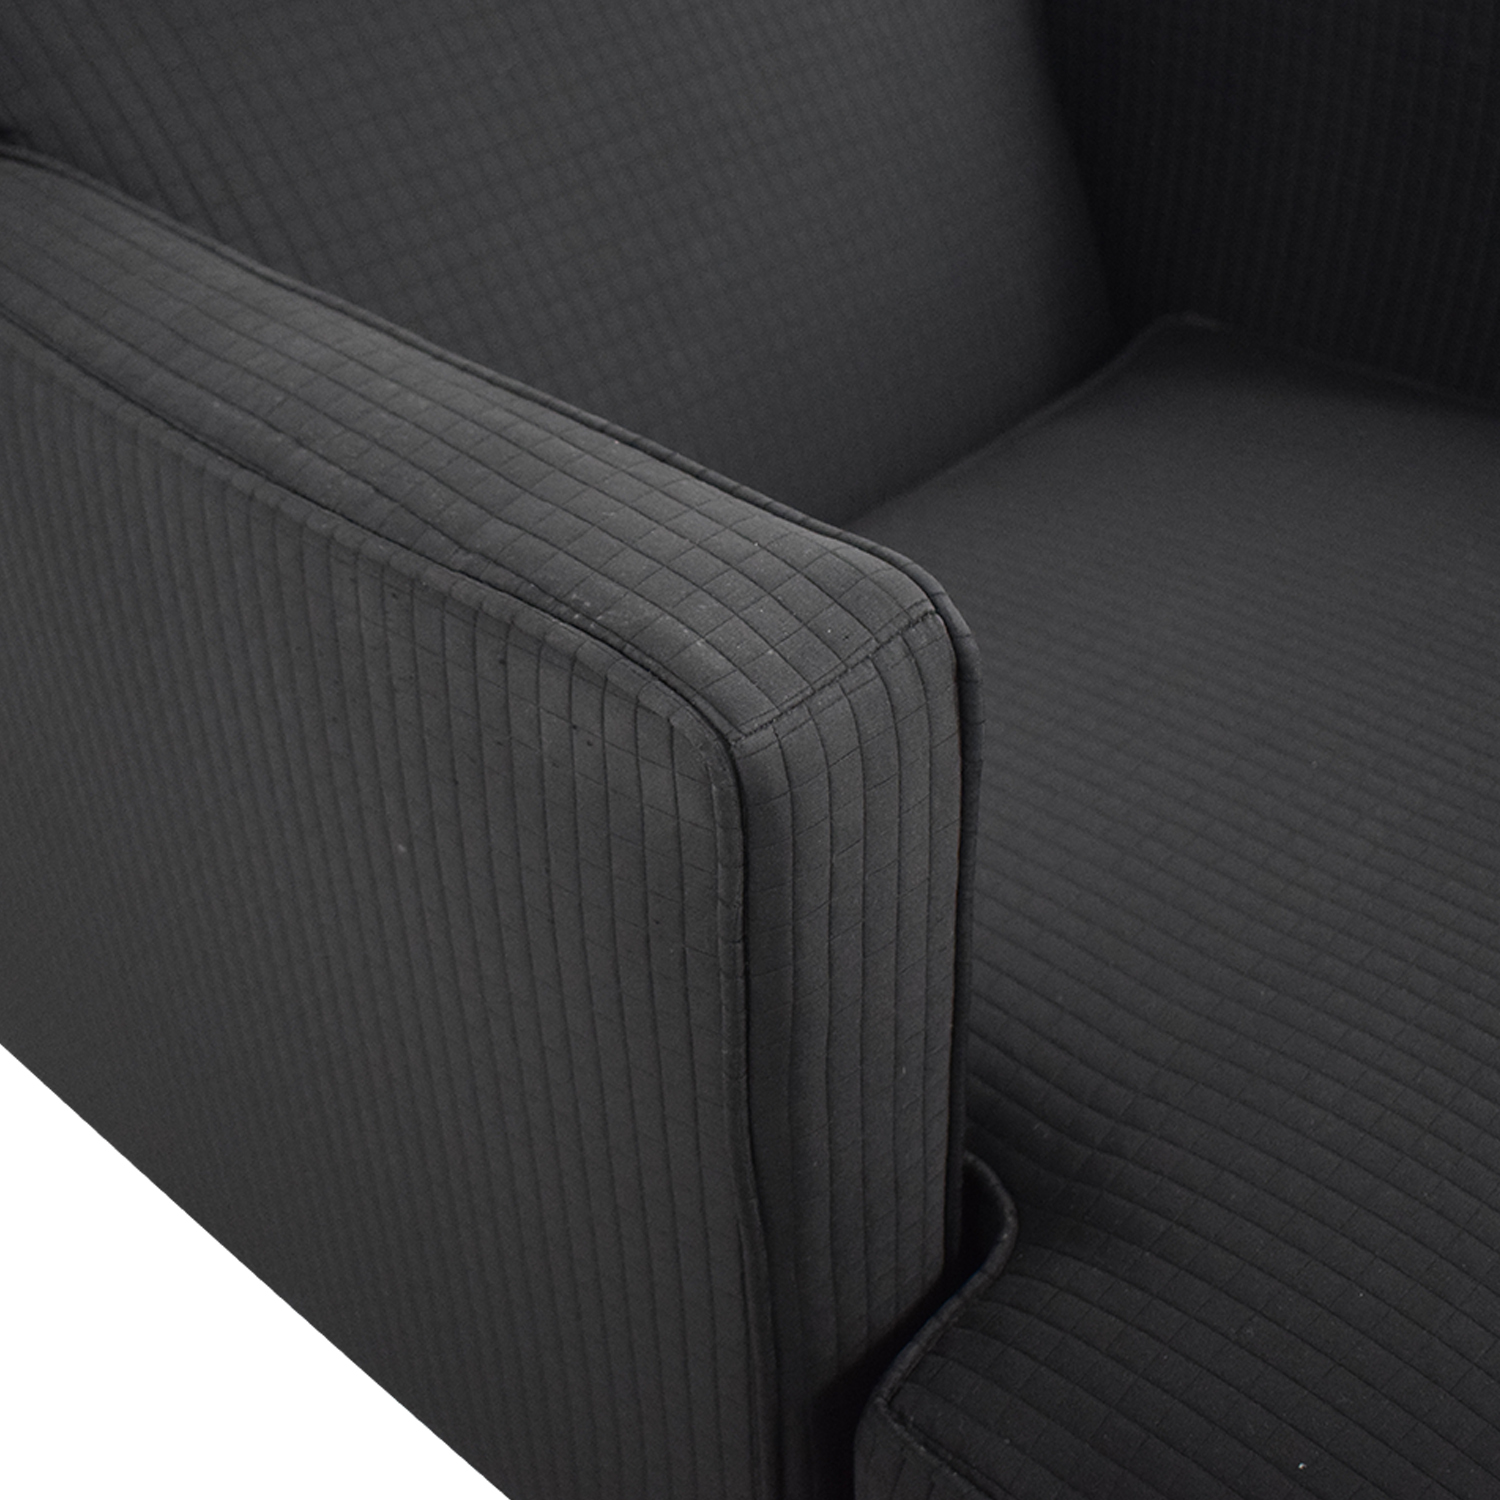 Outstanding 90 Off Modern Black Accent Chair Chairs Ibusinesslaw Wood Chair Design Ideas Ibusinesslaworg